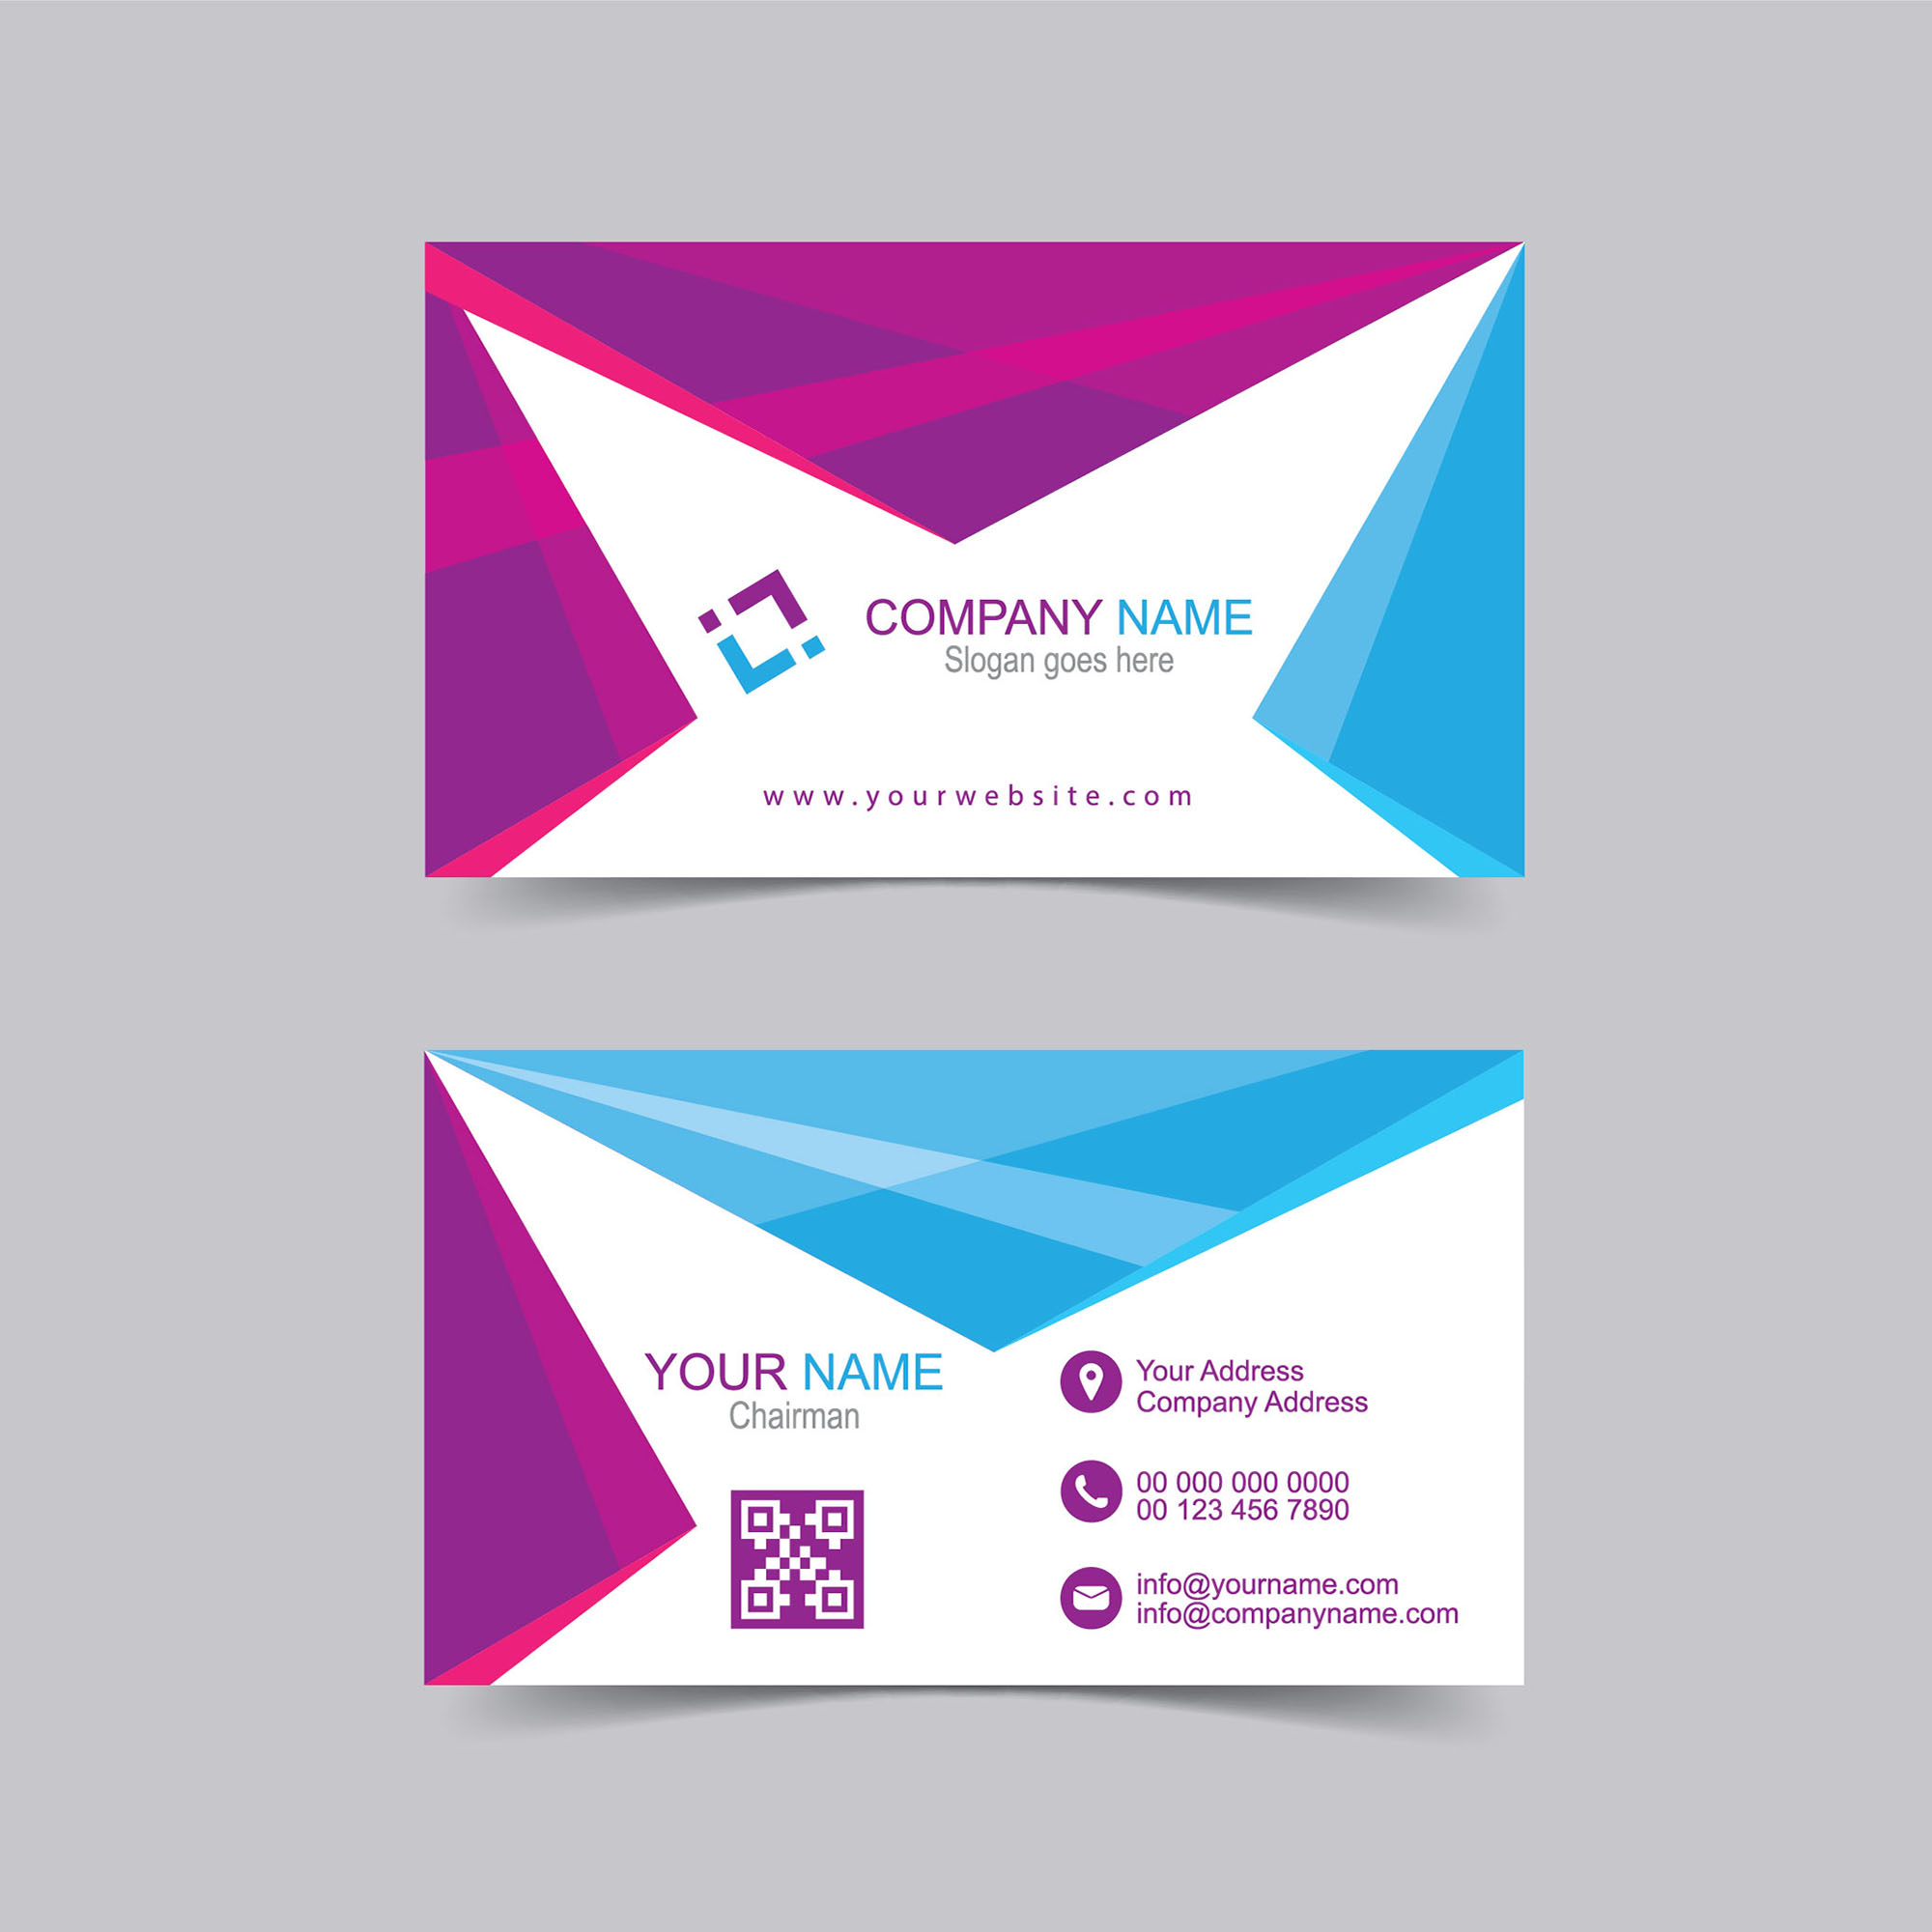 Visiting Card Vector Template Free Download - Wisxi.com